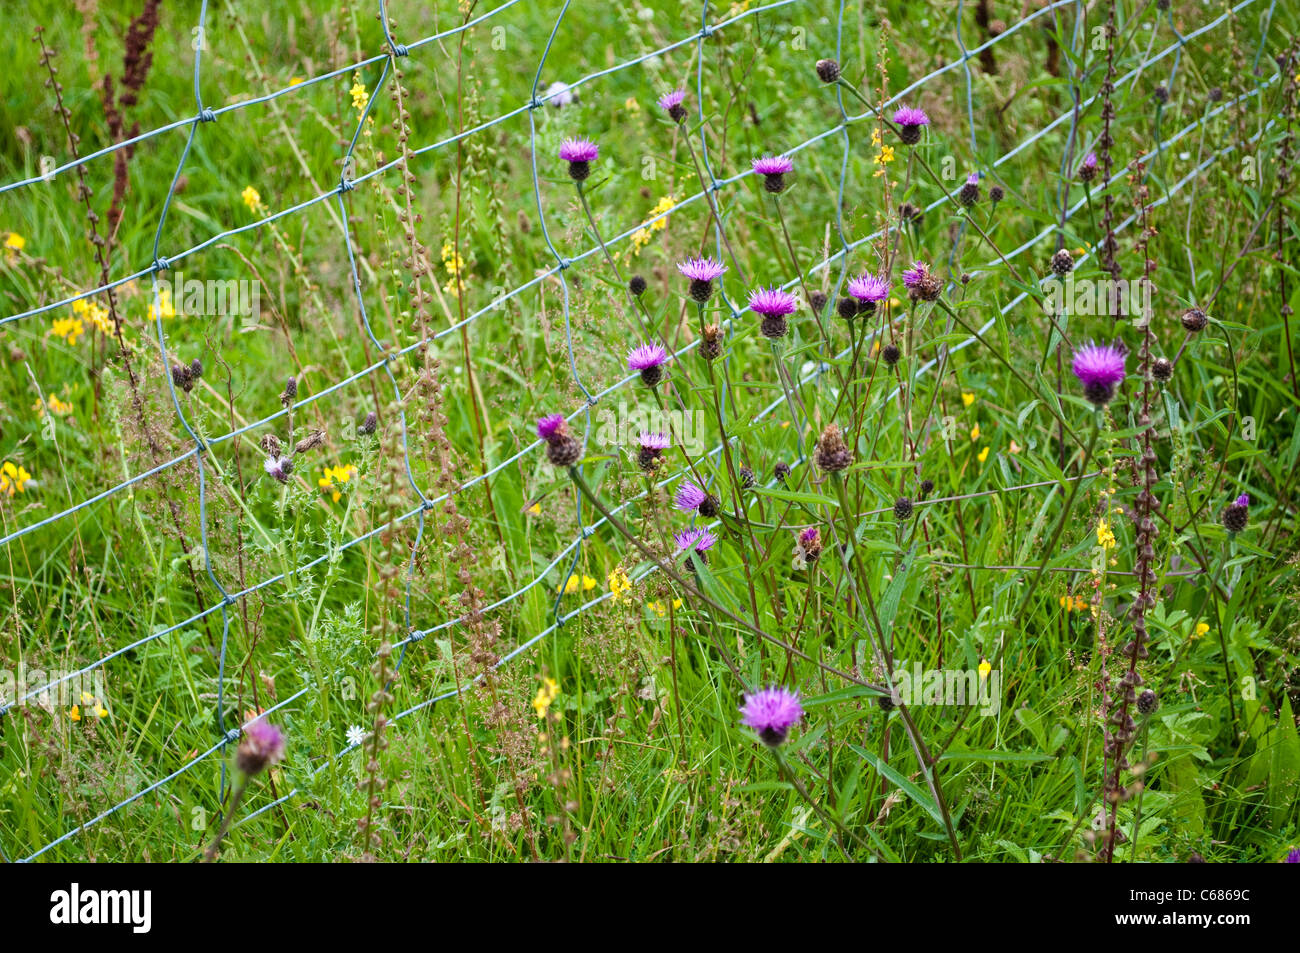 Teasel flowers and wire fence - Stock Image